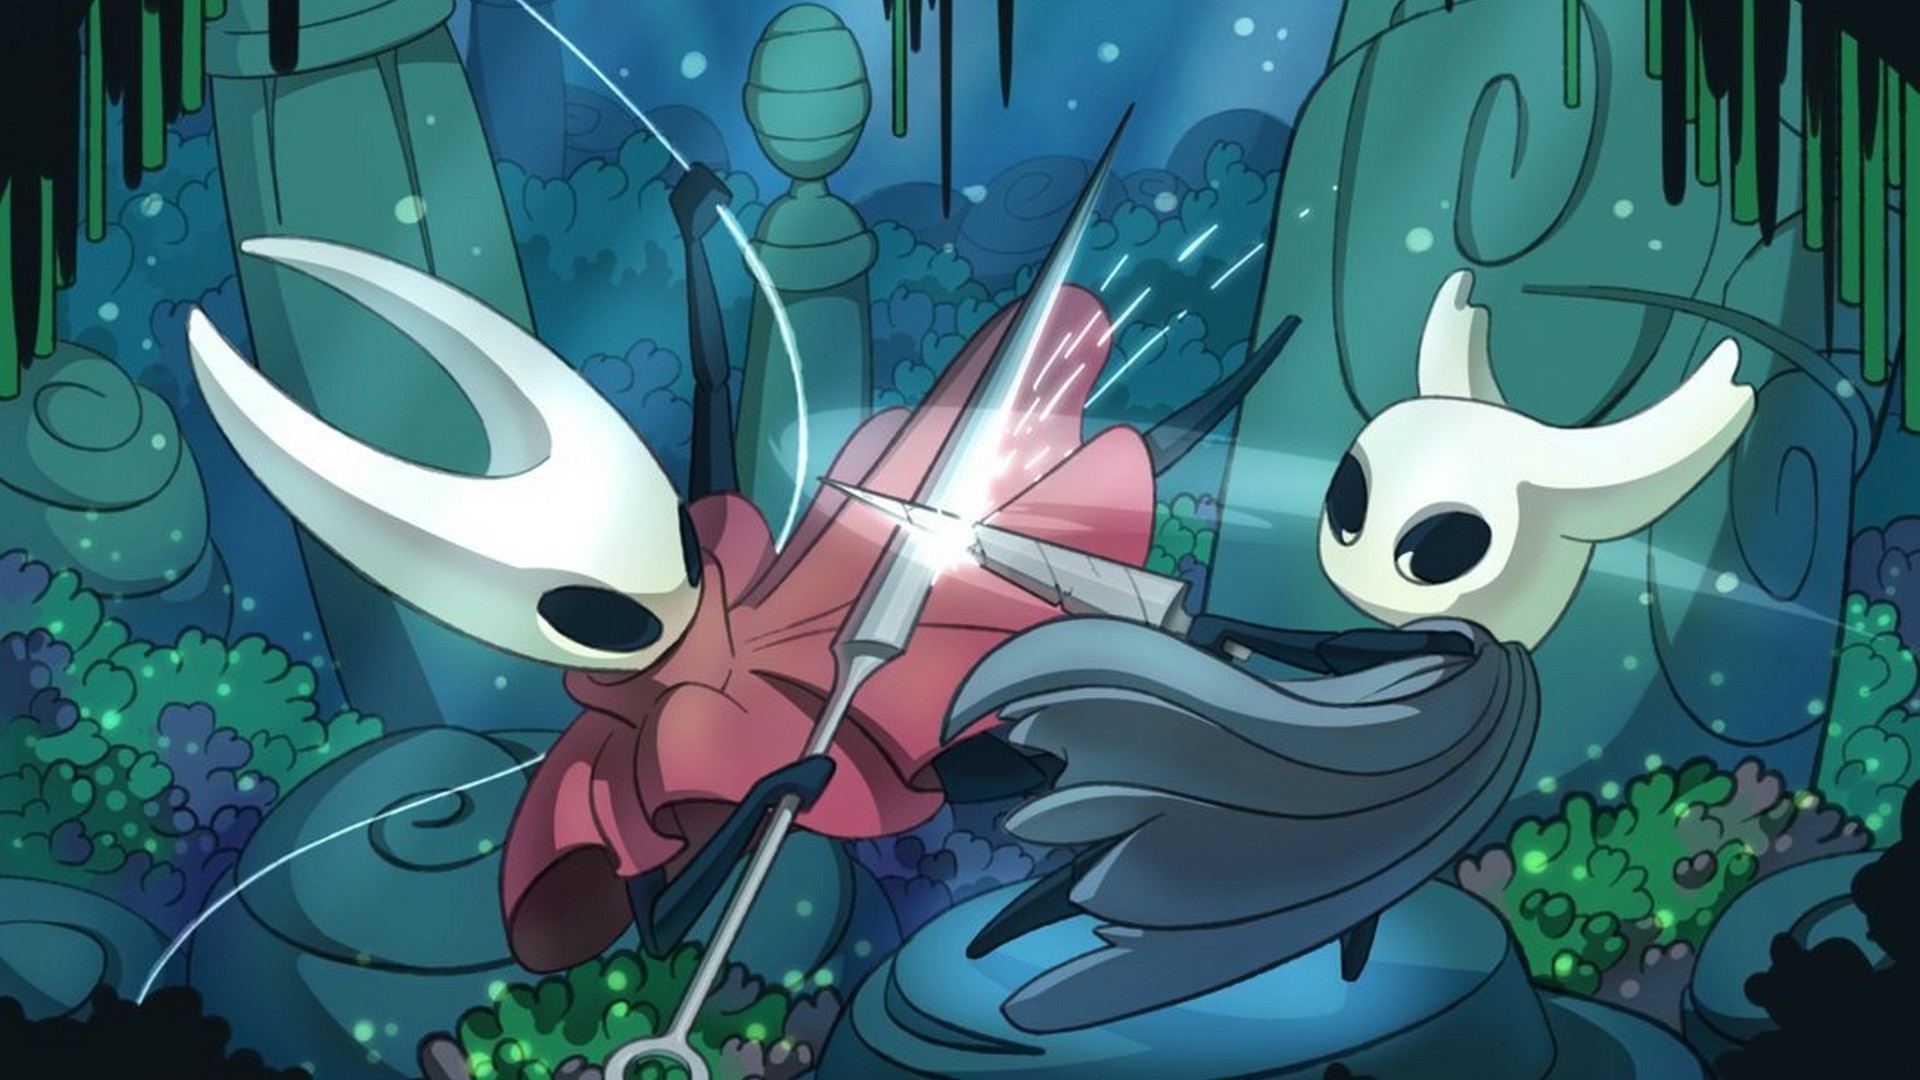 Hollow Knight Game Desktop Backgrounds Hd With High Resolution Hollow Knight Hornet Fight 1920x1080 Wallpaper Teahub Io